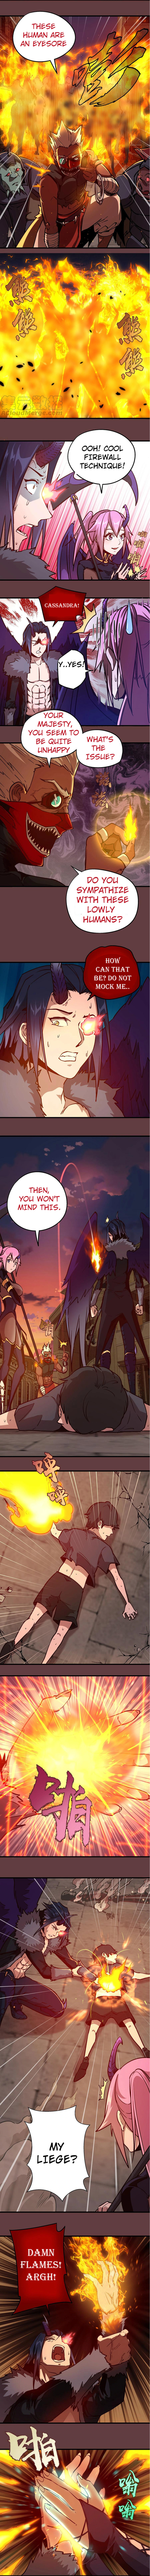 I'm Not the Overlord! - chapter 2-eng-li